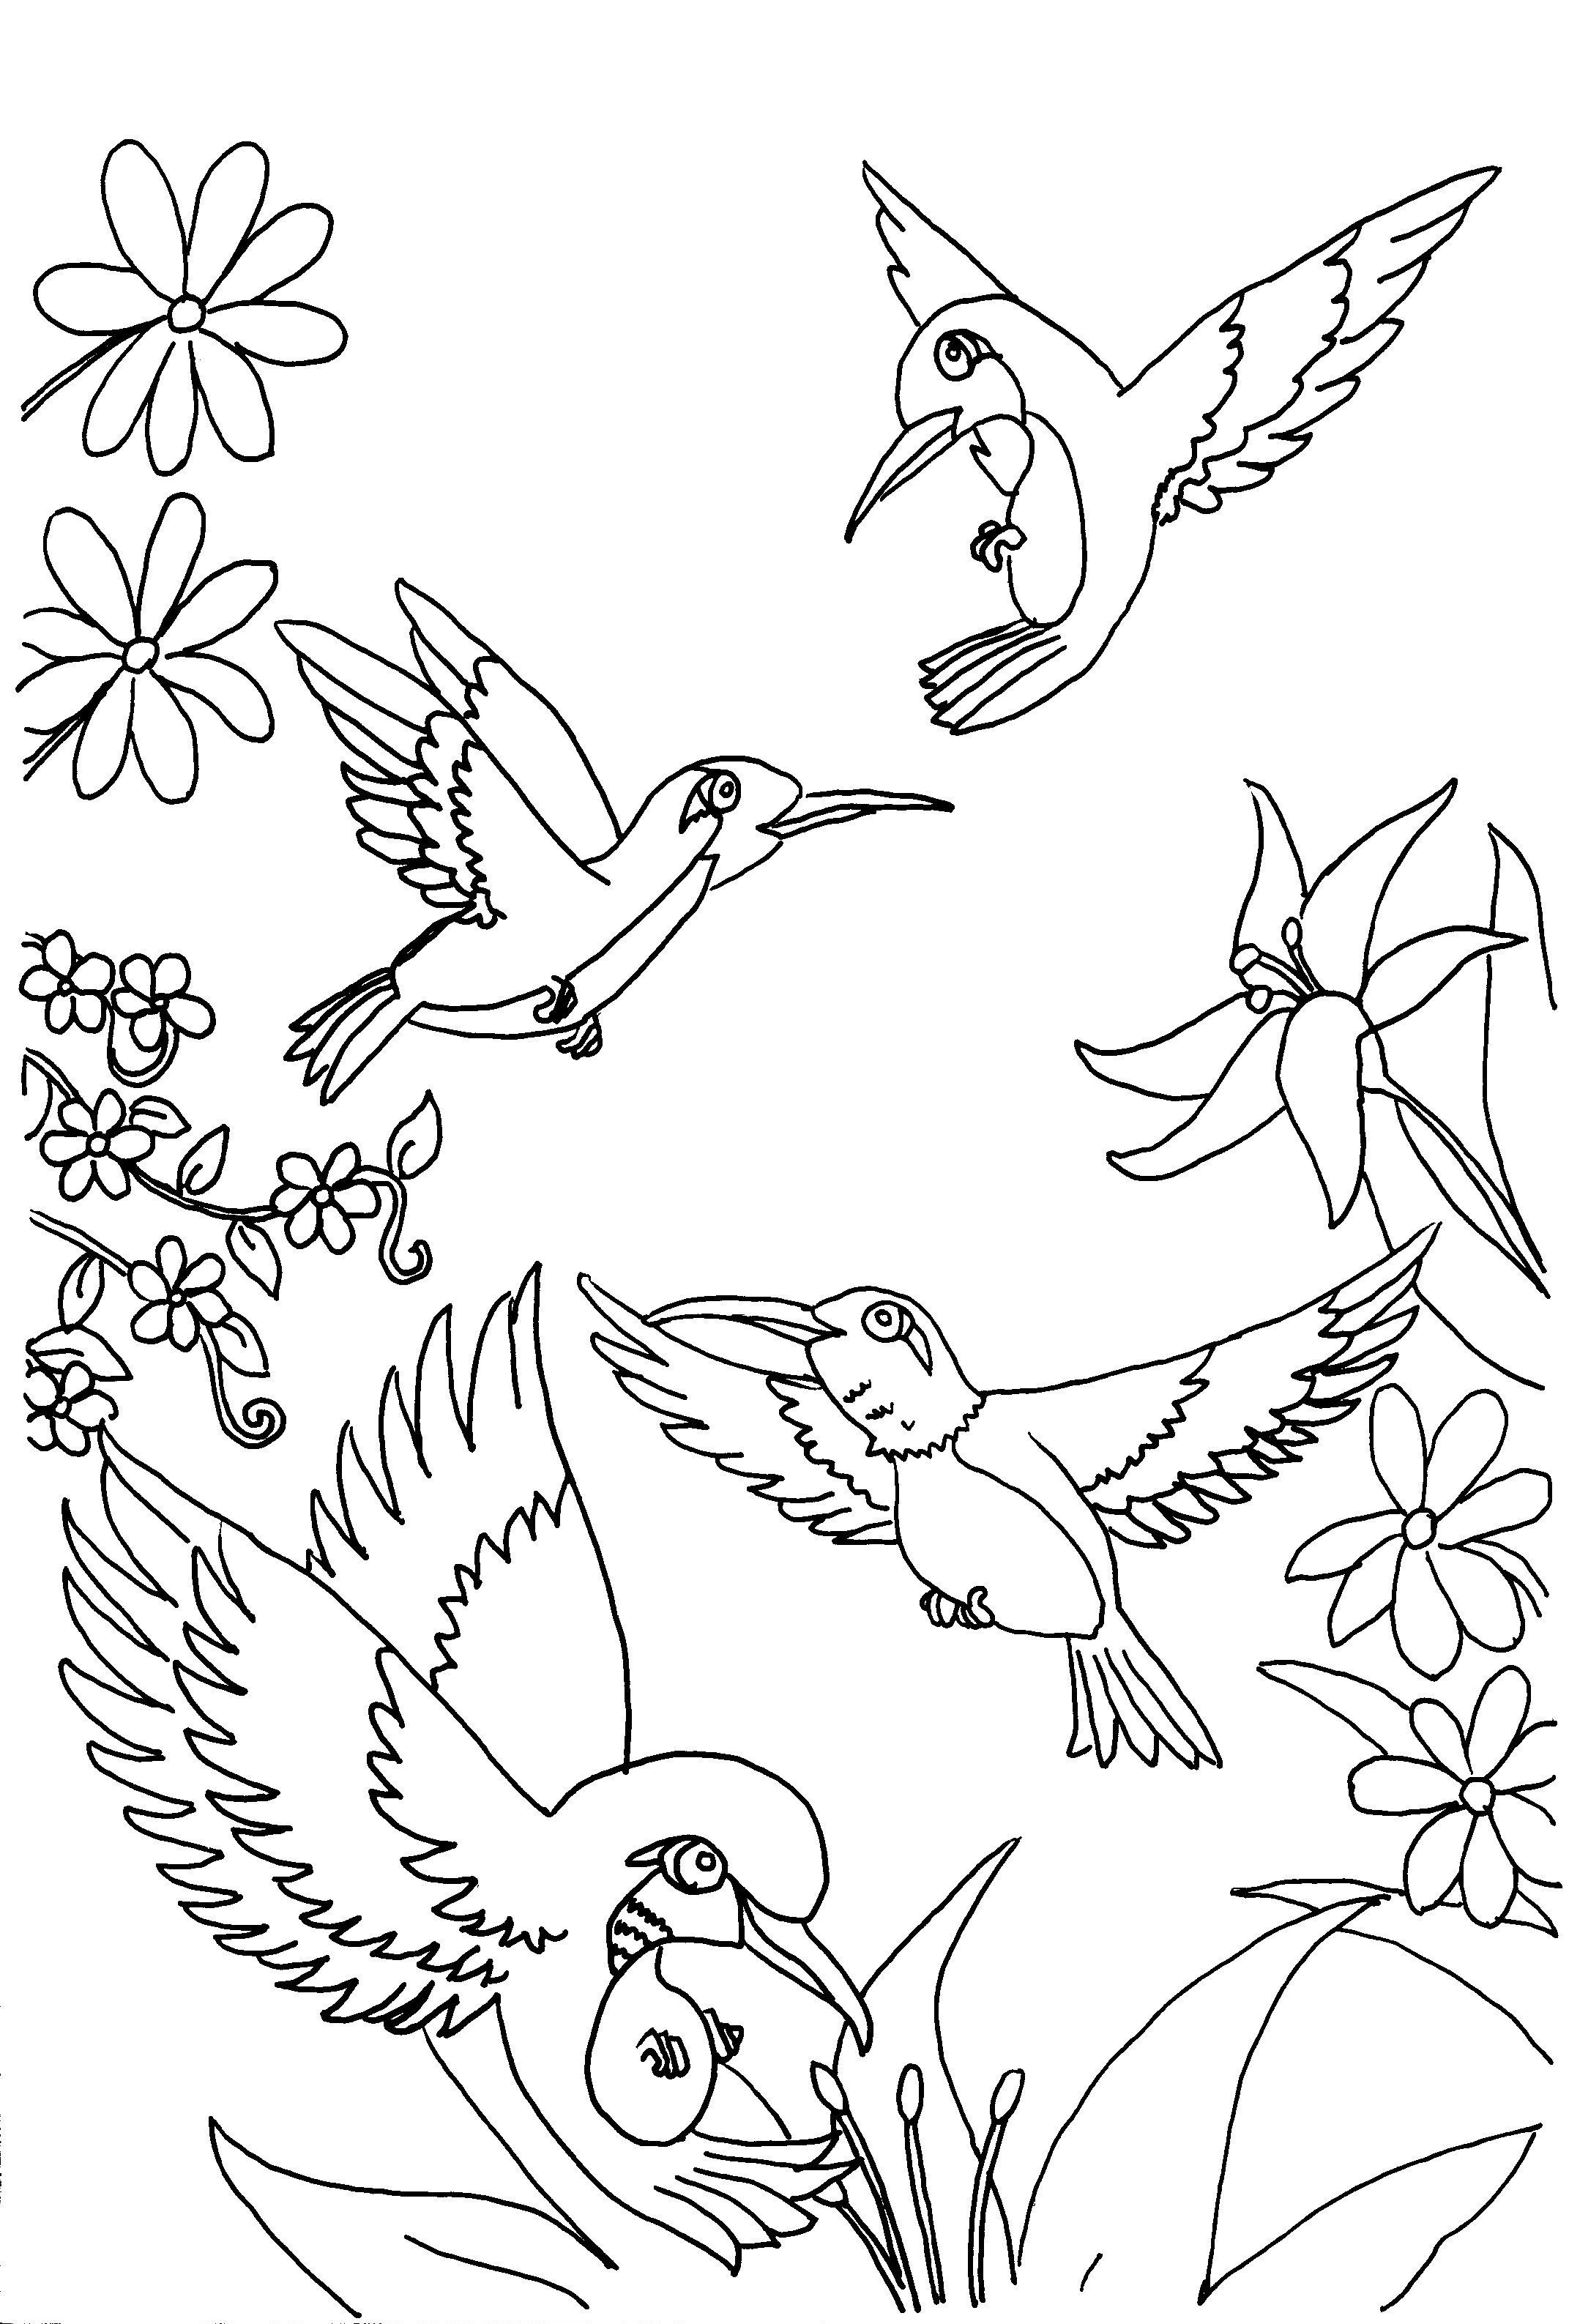 printable images of birds flying bird coloring pages getcoloringpagescom images birds printable of